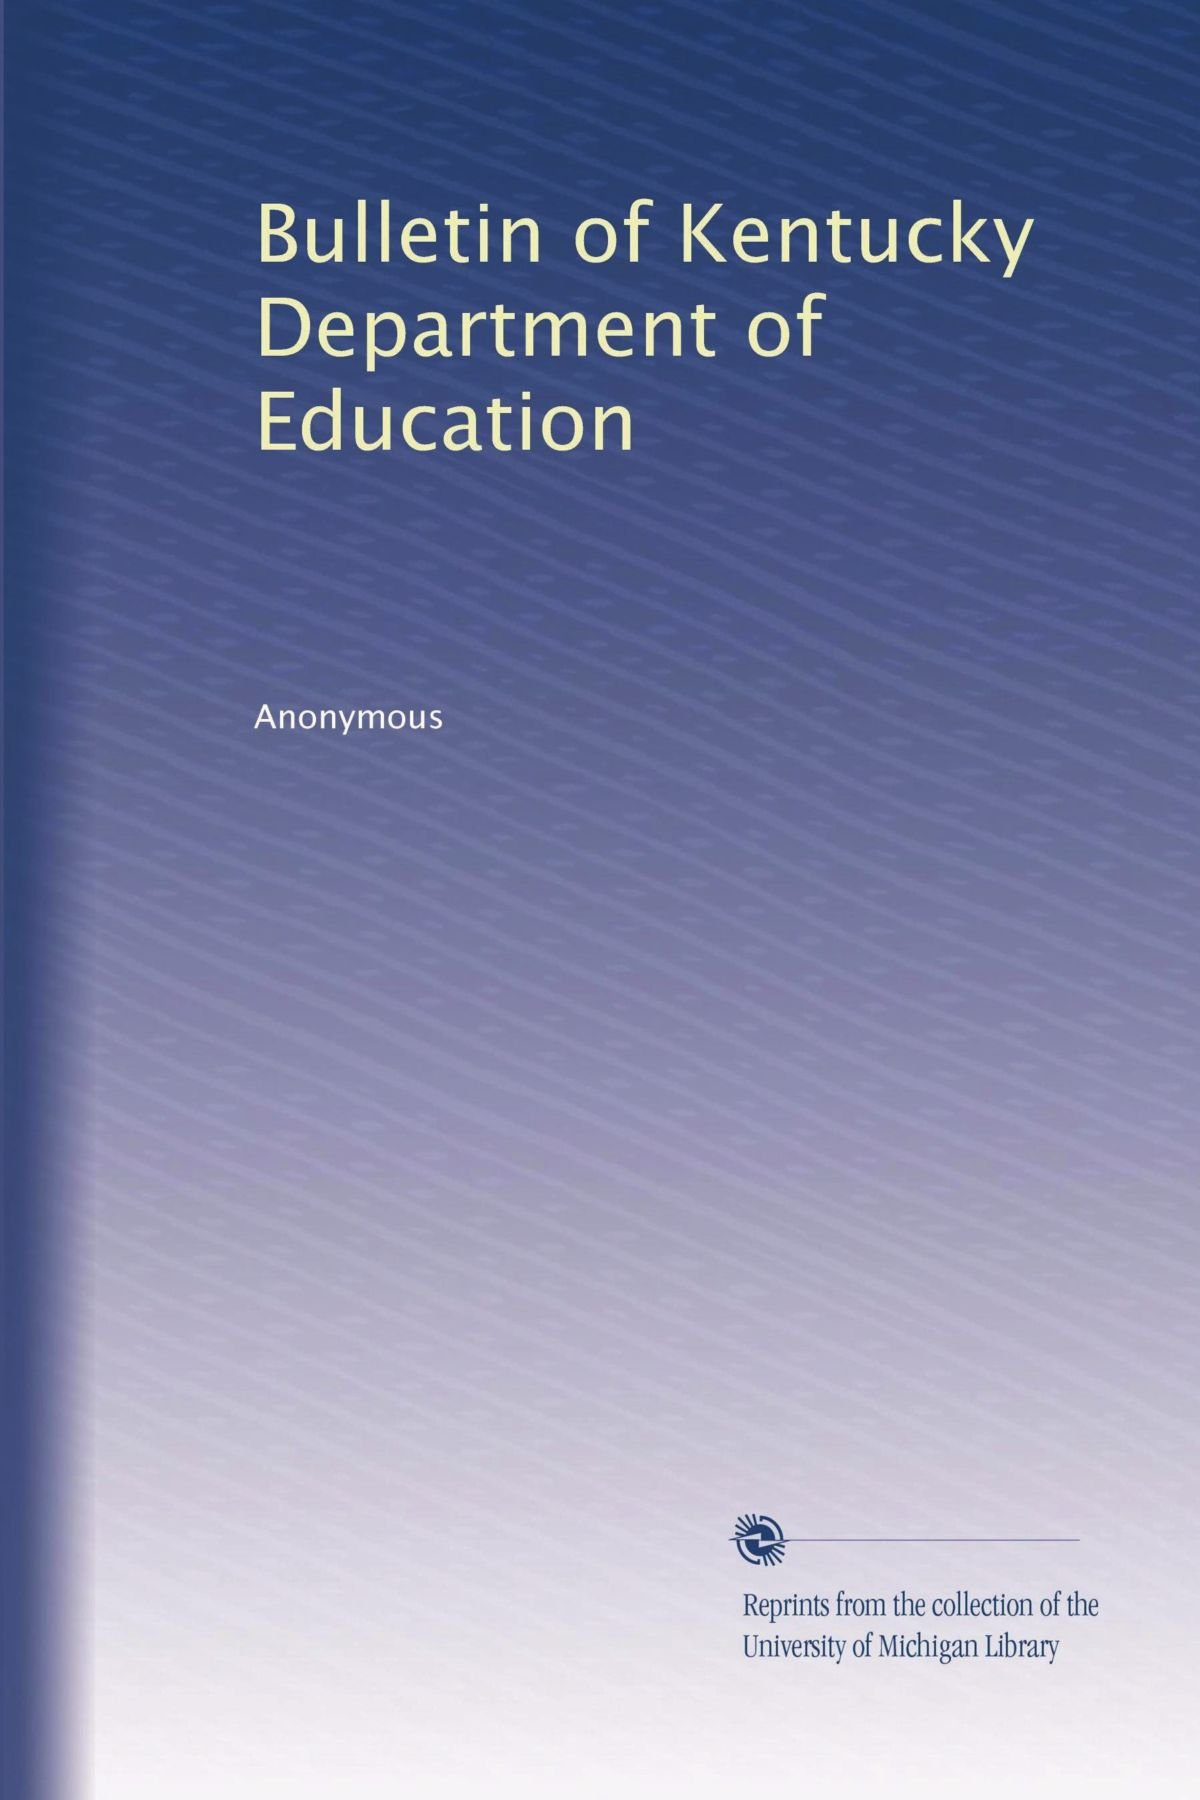 Download Bulletin of Kentucky Department of Education (Volume 6) ebook